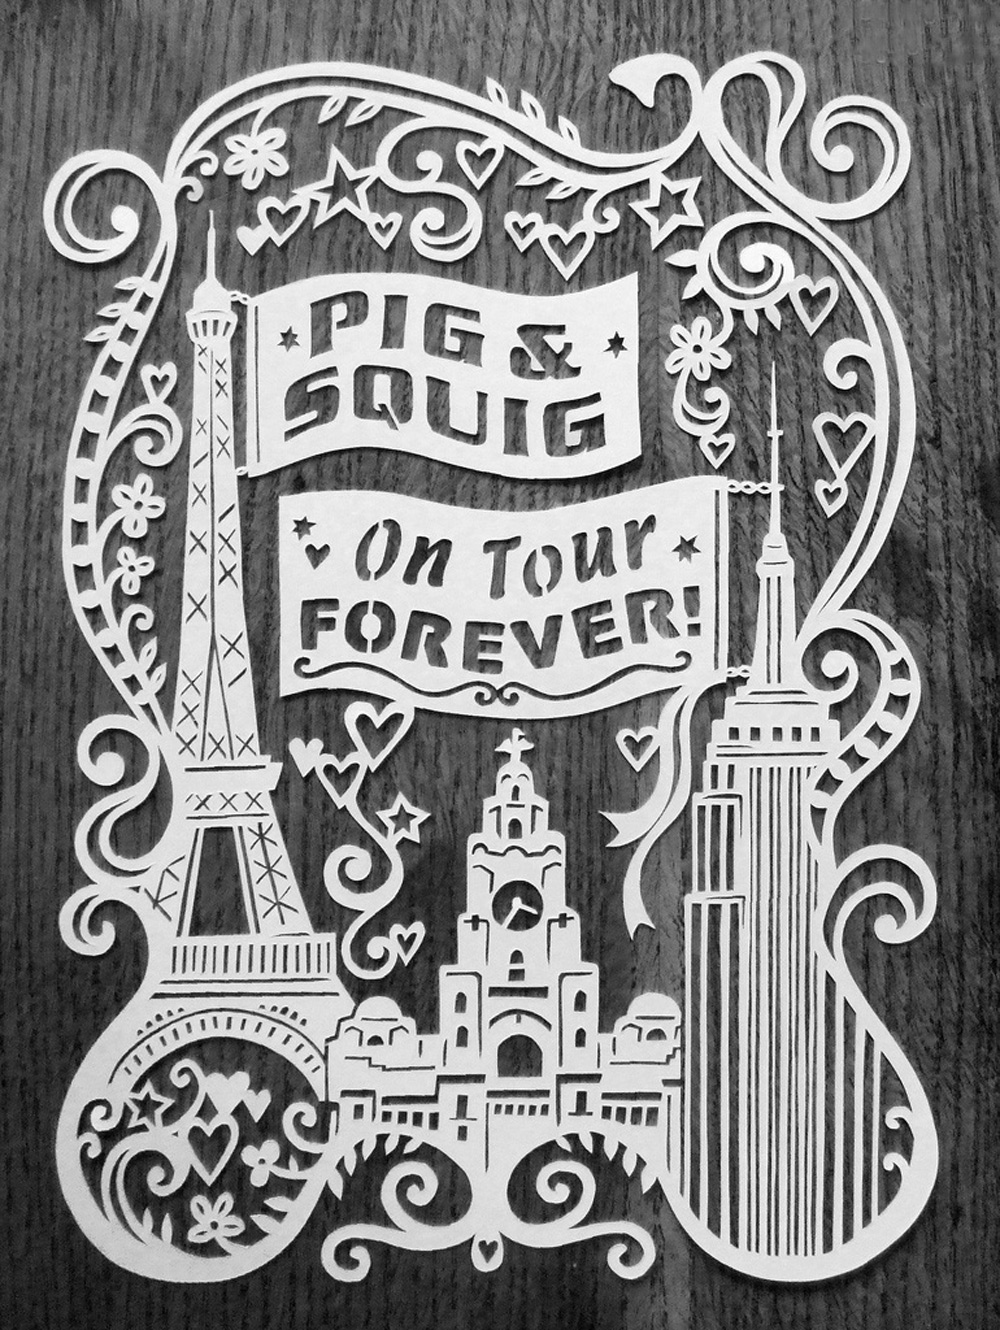 papercut illustration Liverpool Paris and New York.